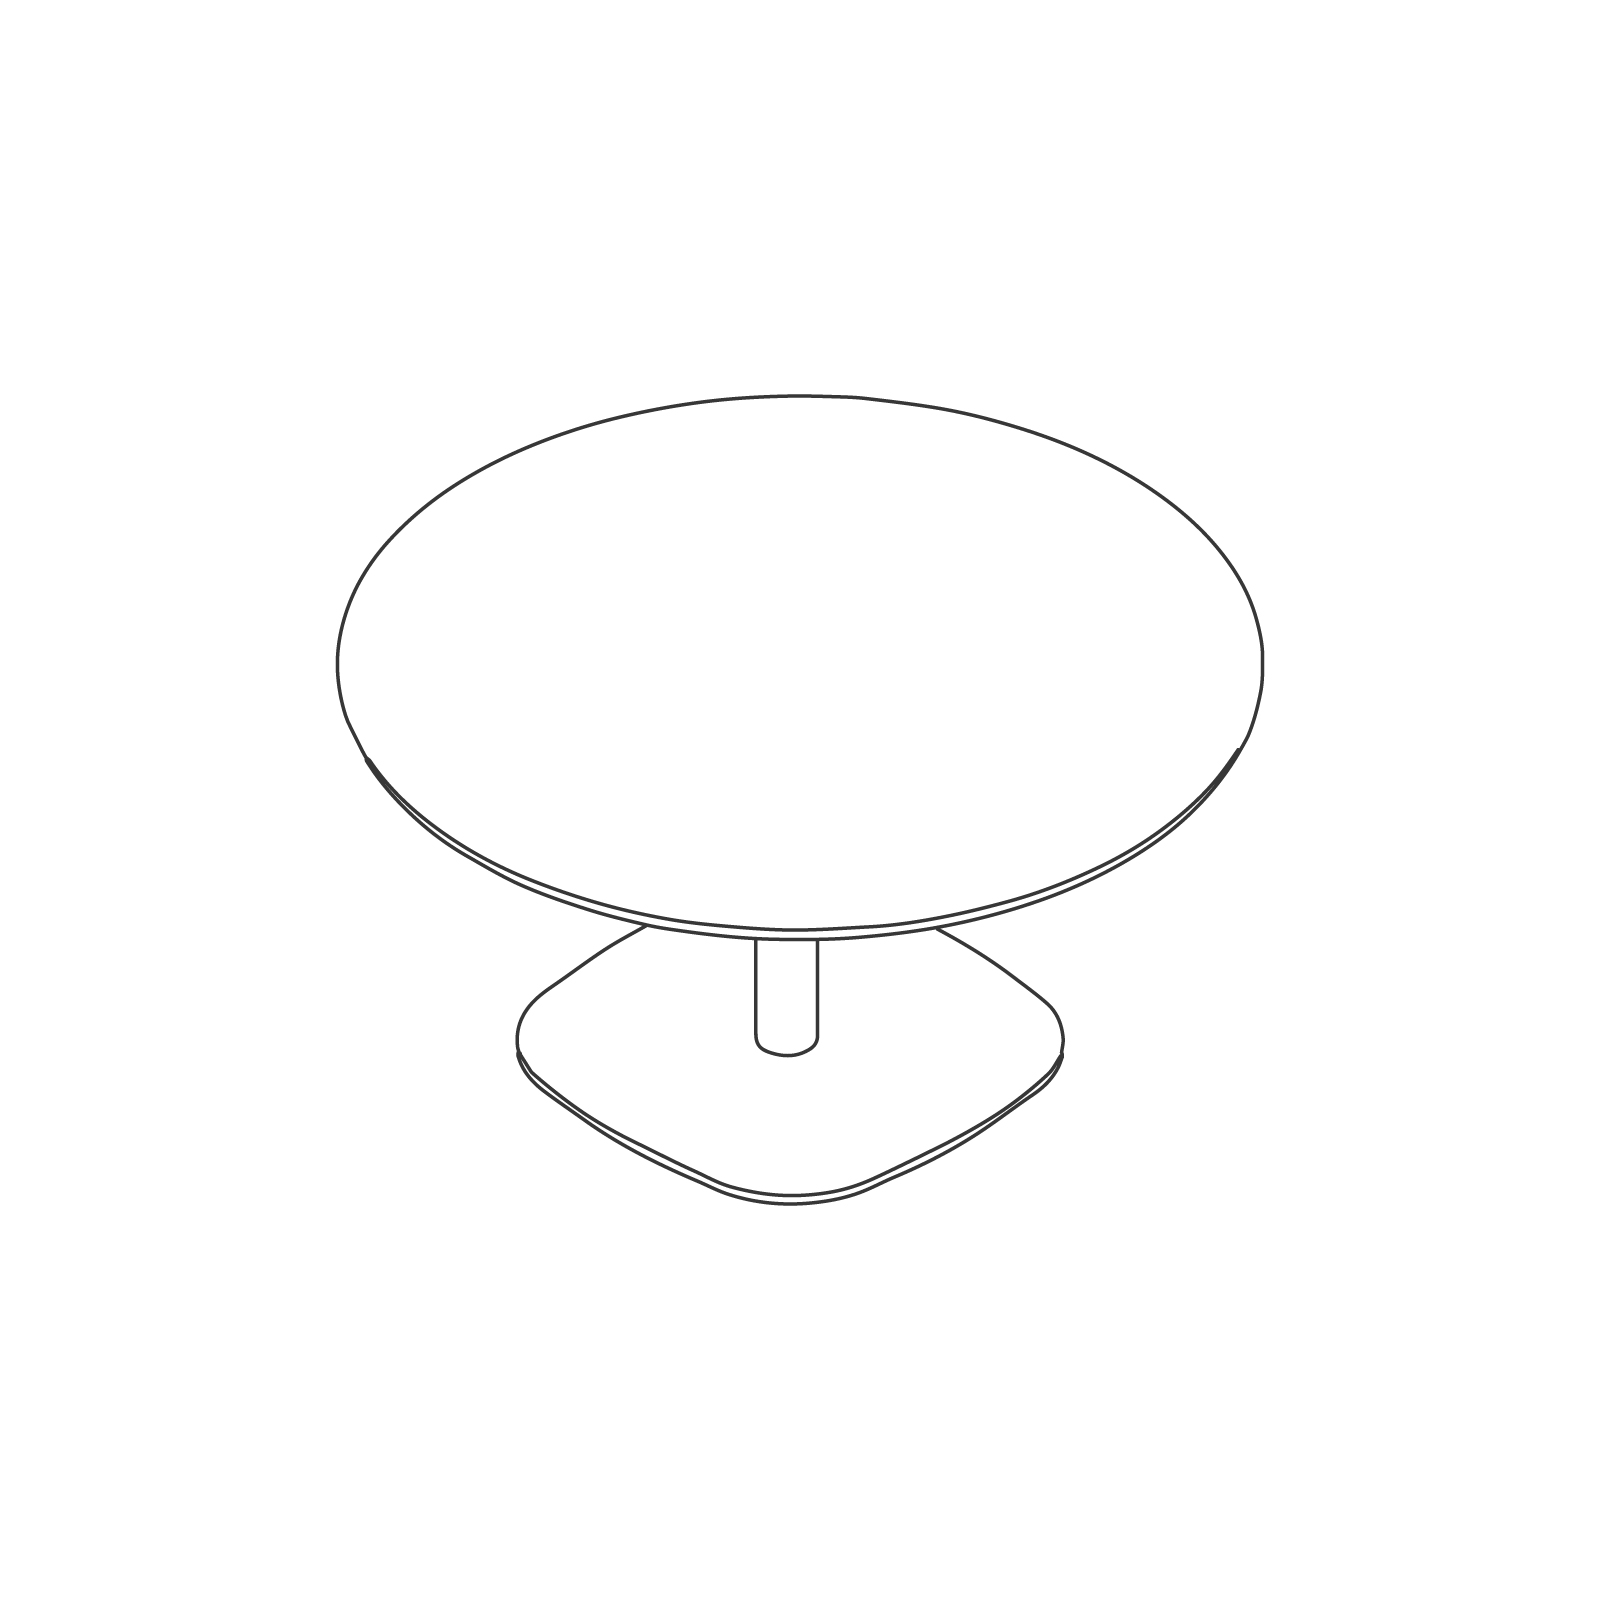 A line drawing of Megaped Table–Round.